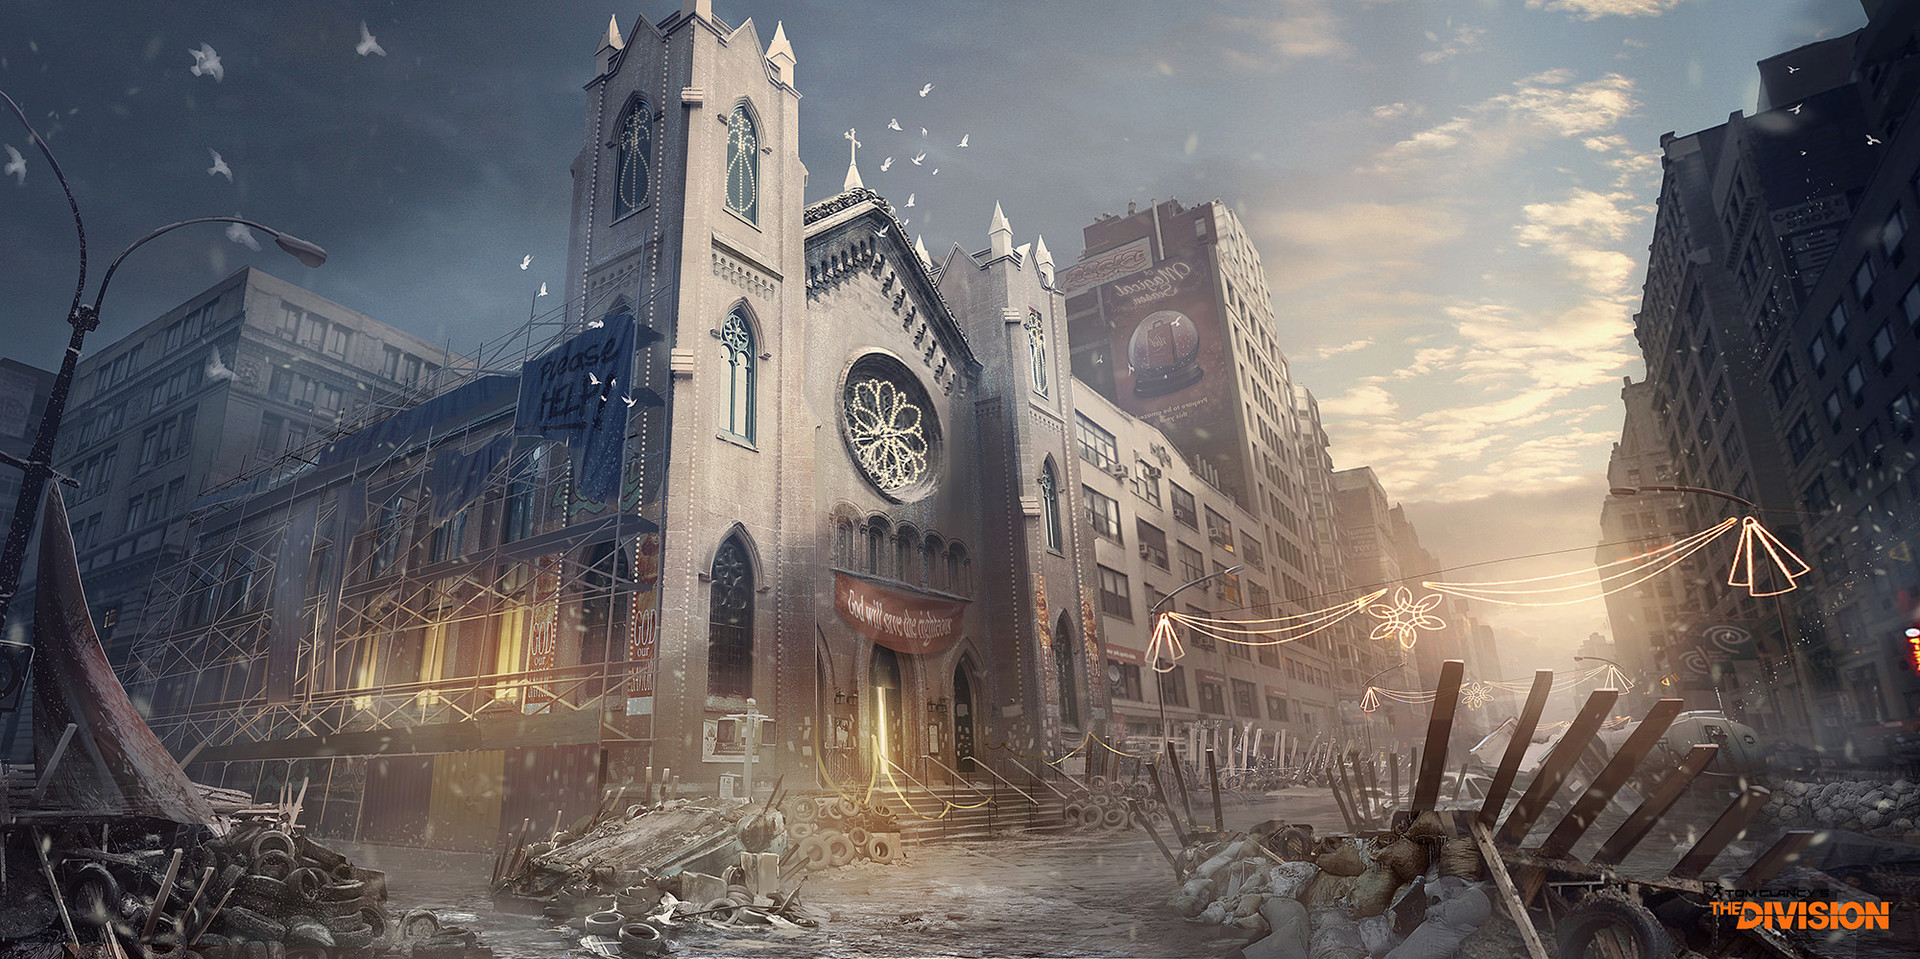 The Division Concept Art